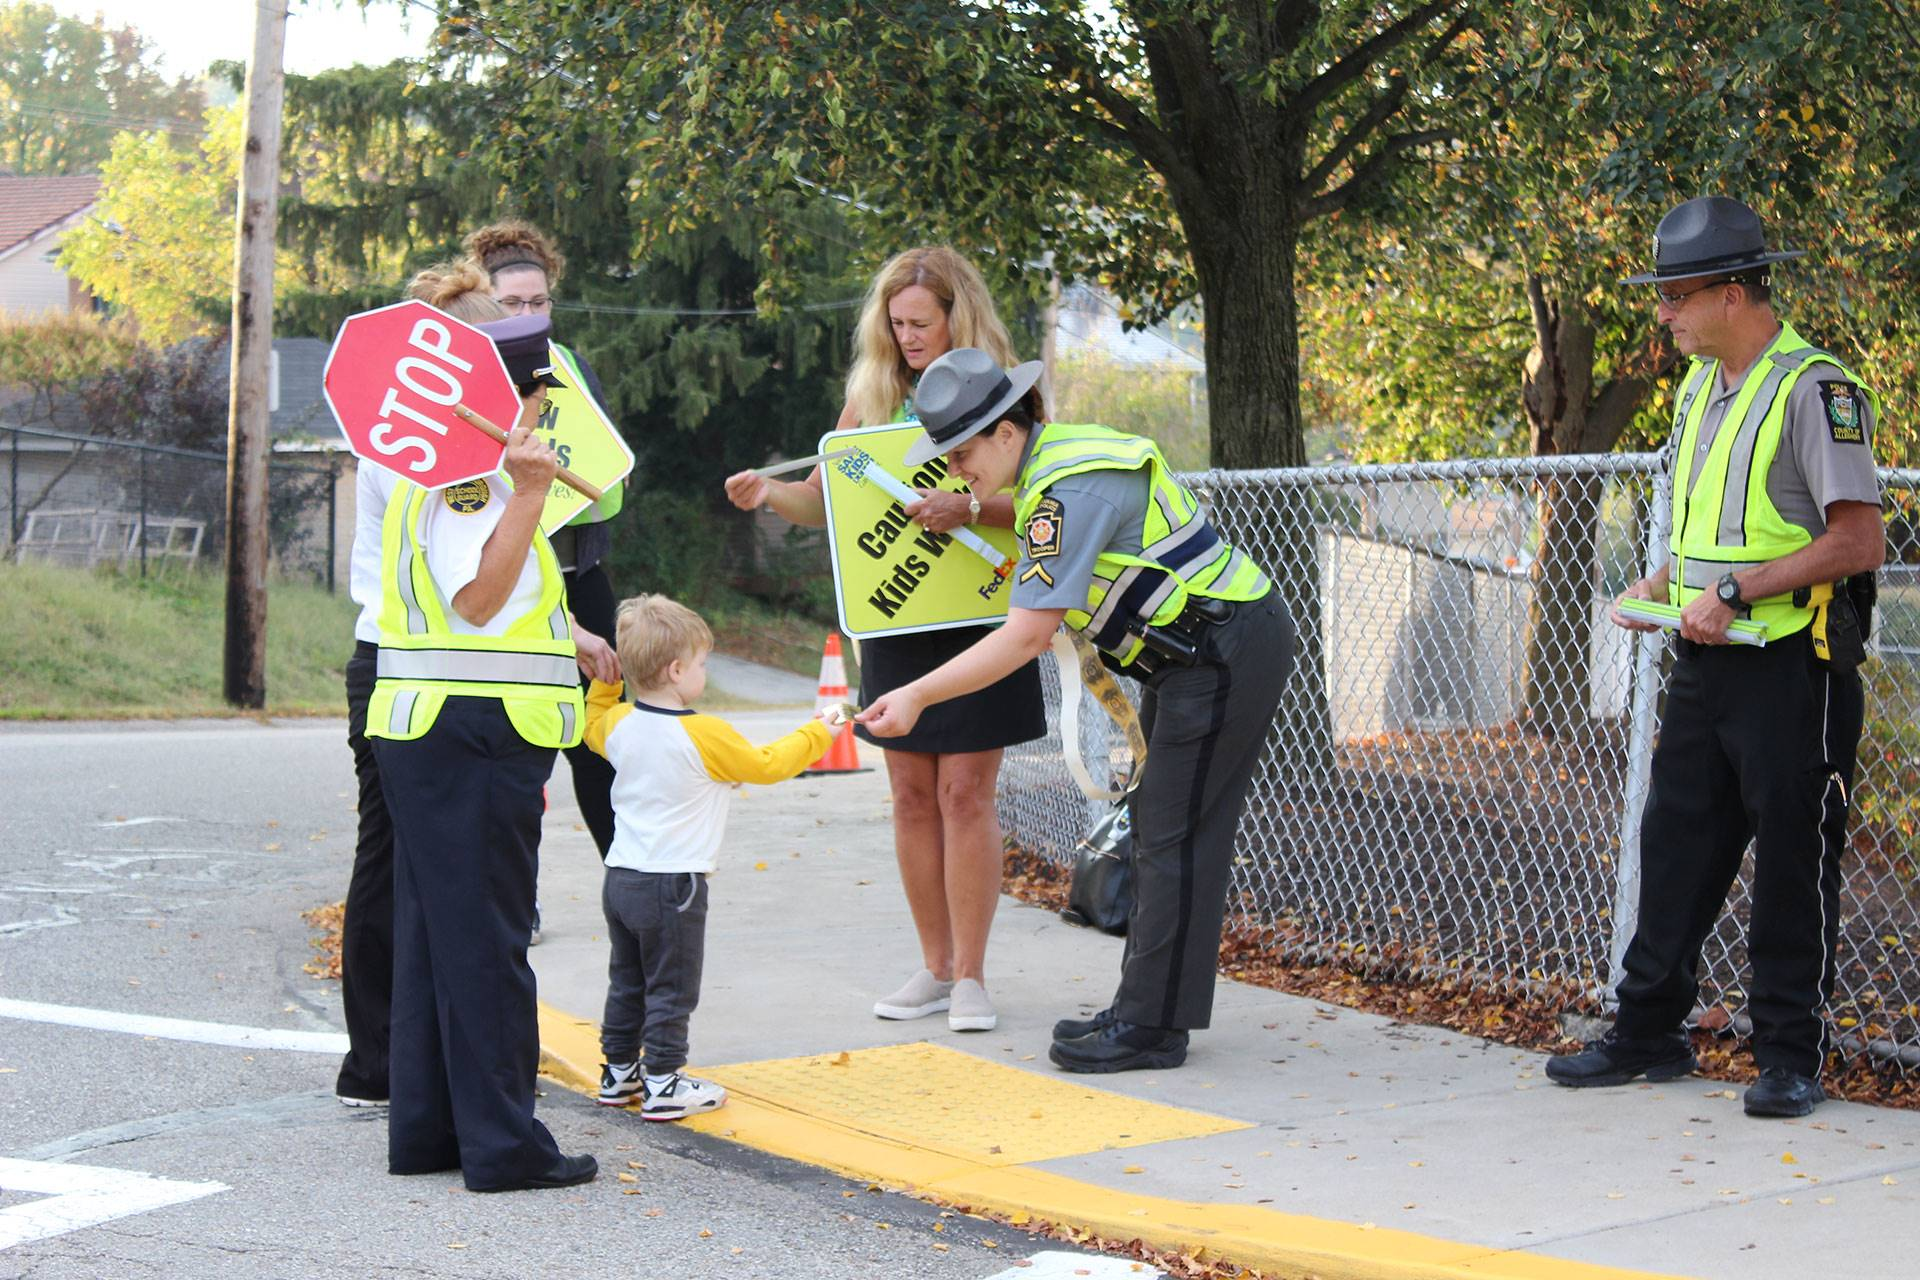 A group of crossing guards and officers at West View Elementary School on Oct. 2, 2019